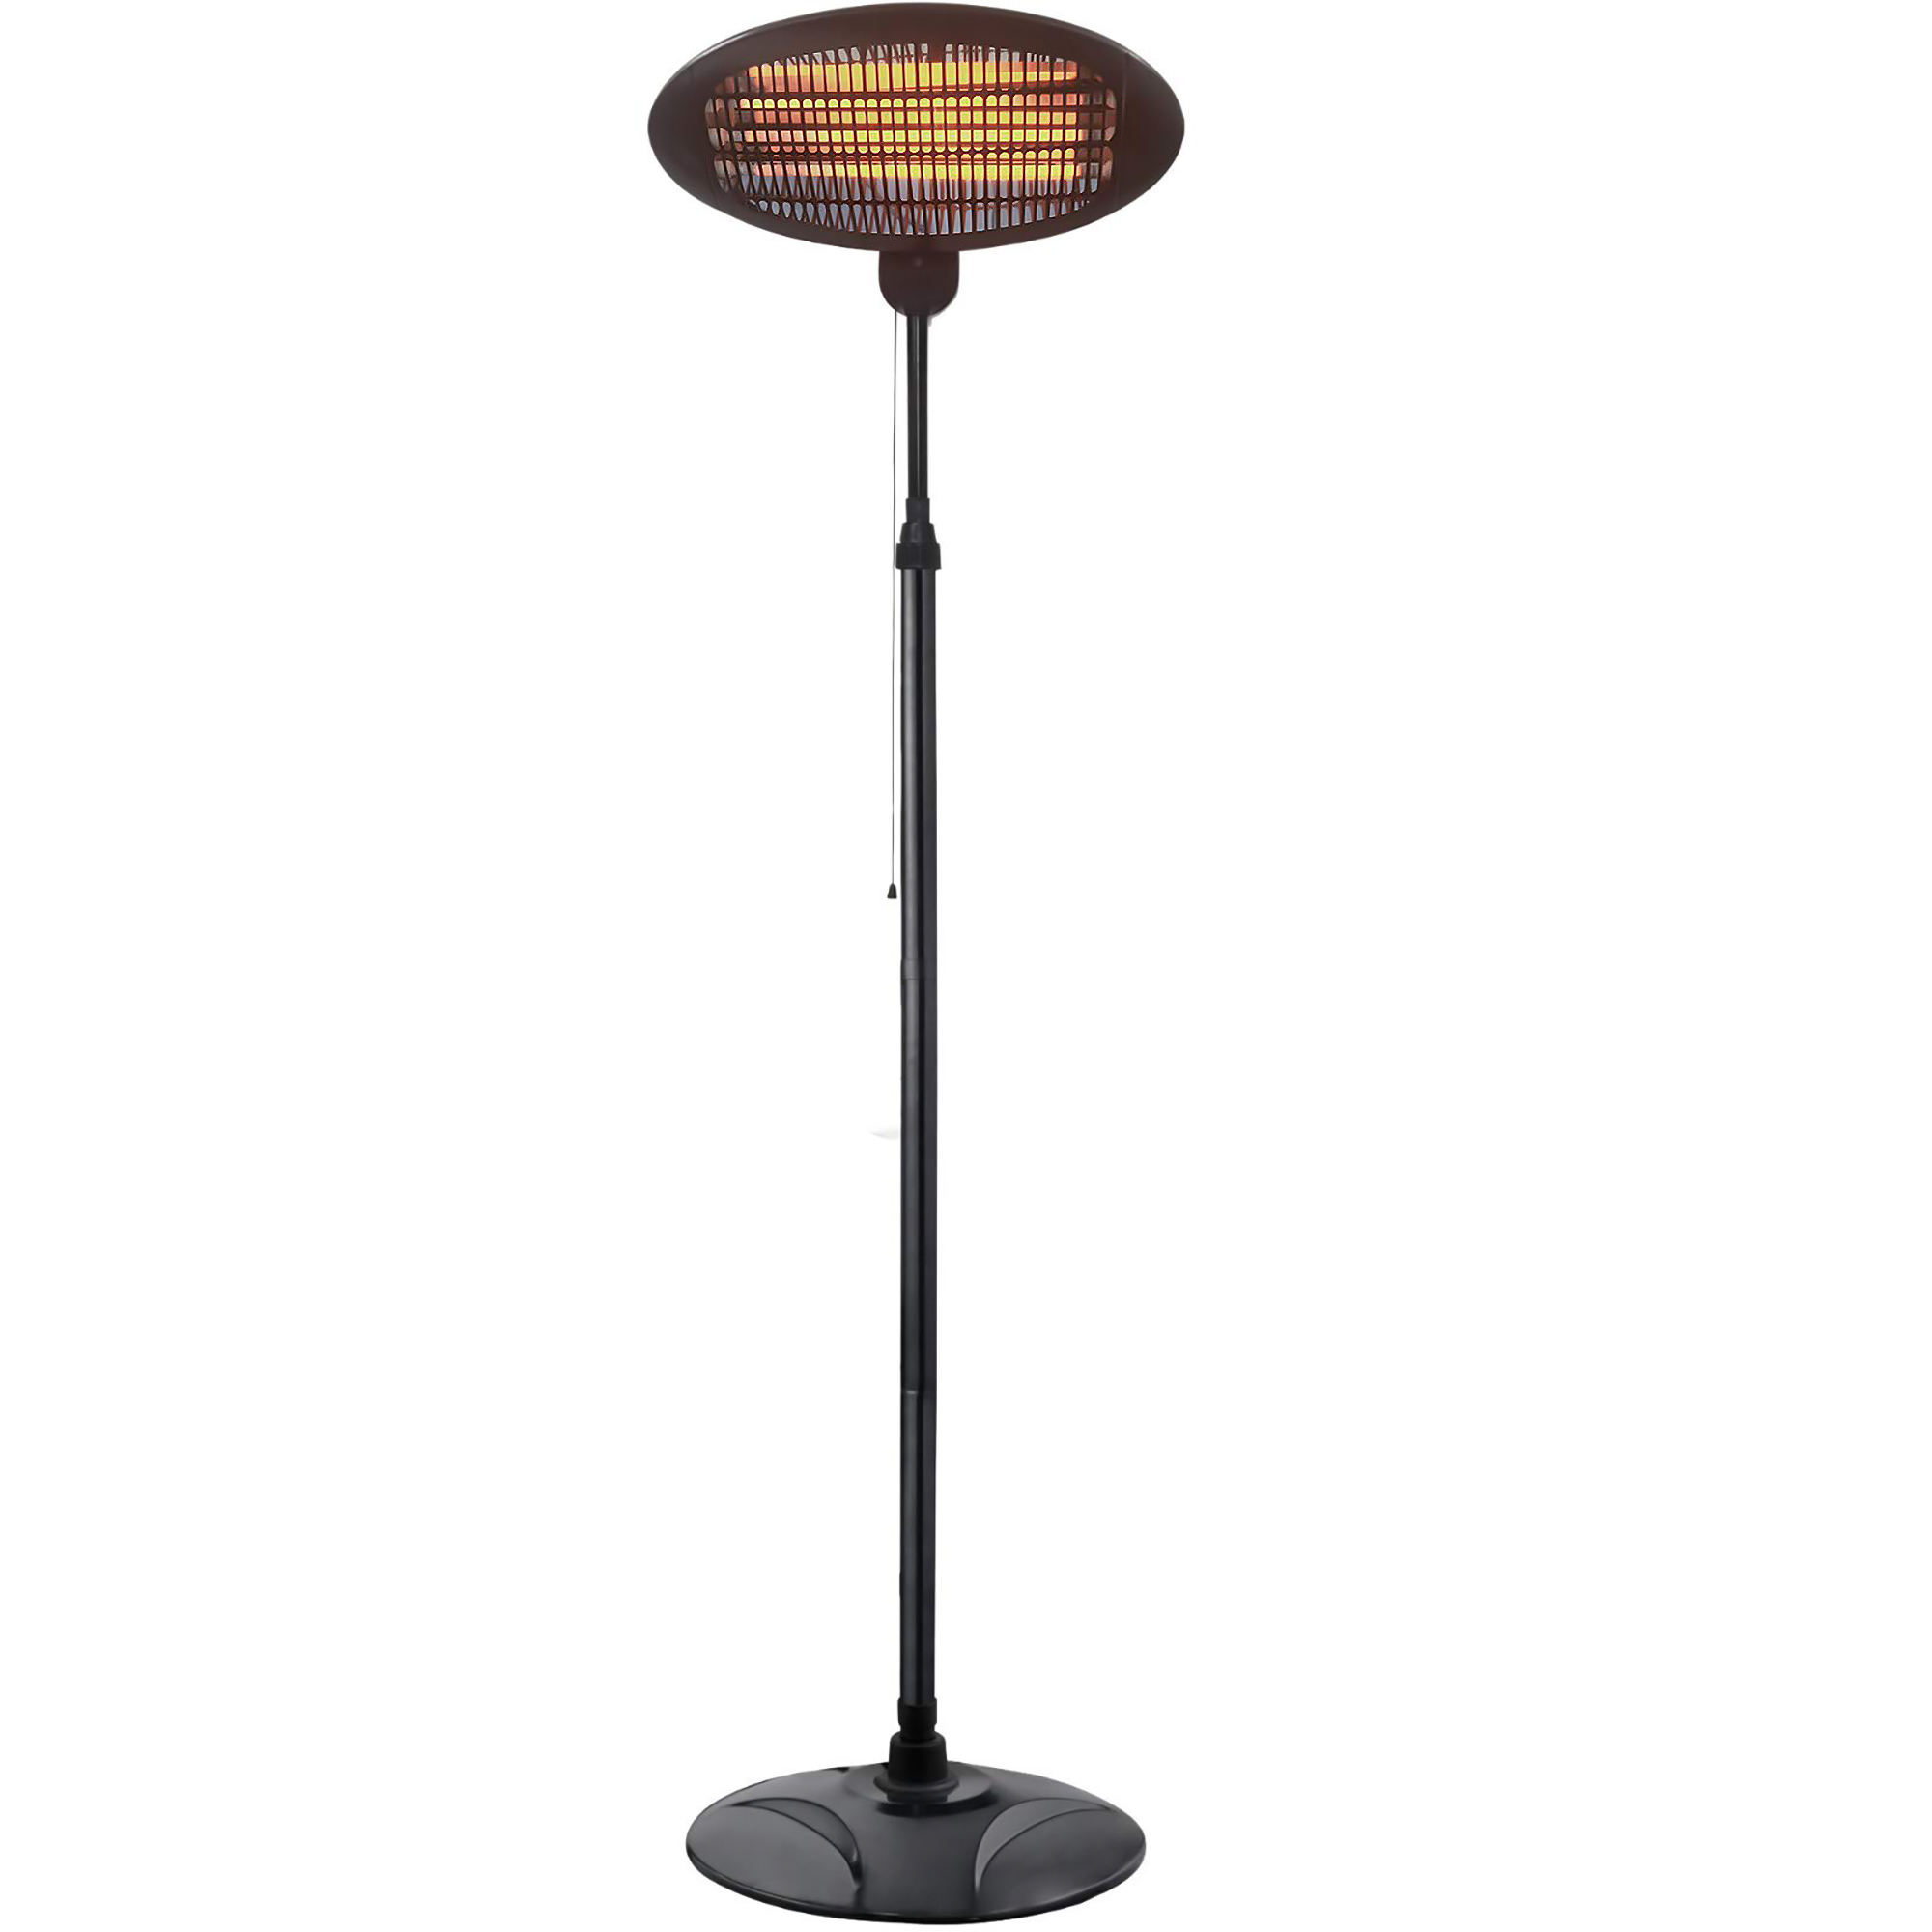 Outdoor Patio Heater、2000W Infrared Halogen Tube Outdoor Garden Electric Ceiling Mounted Patio Heater、Verticaling Mounted Heat